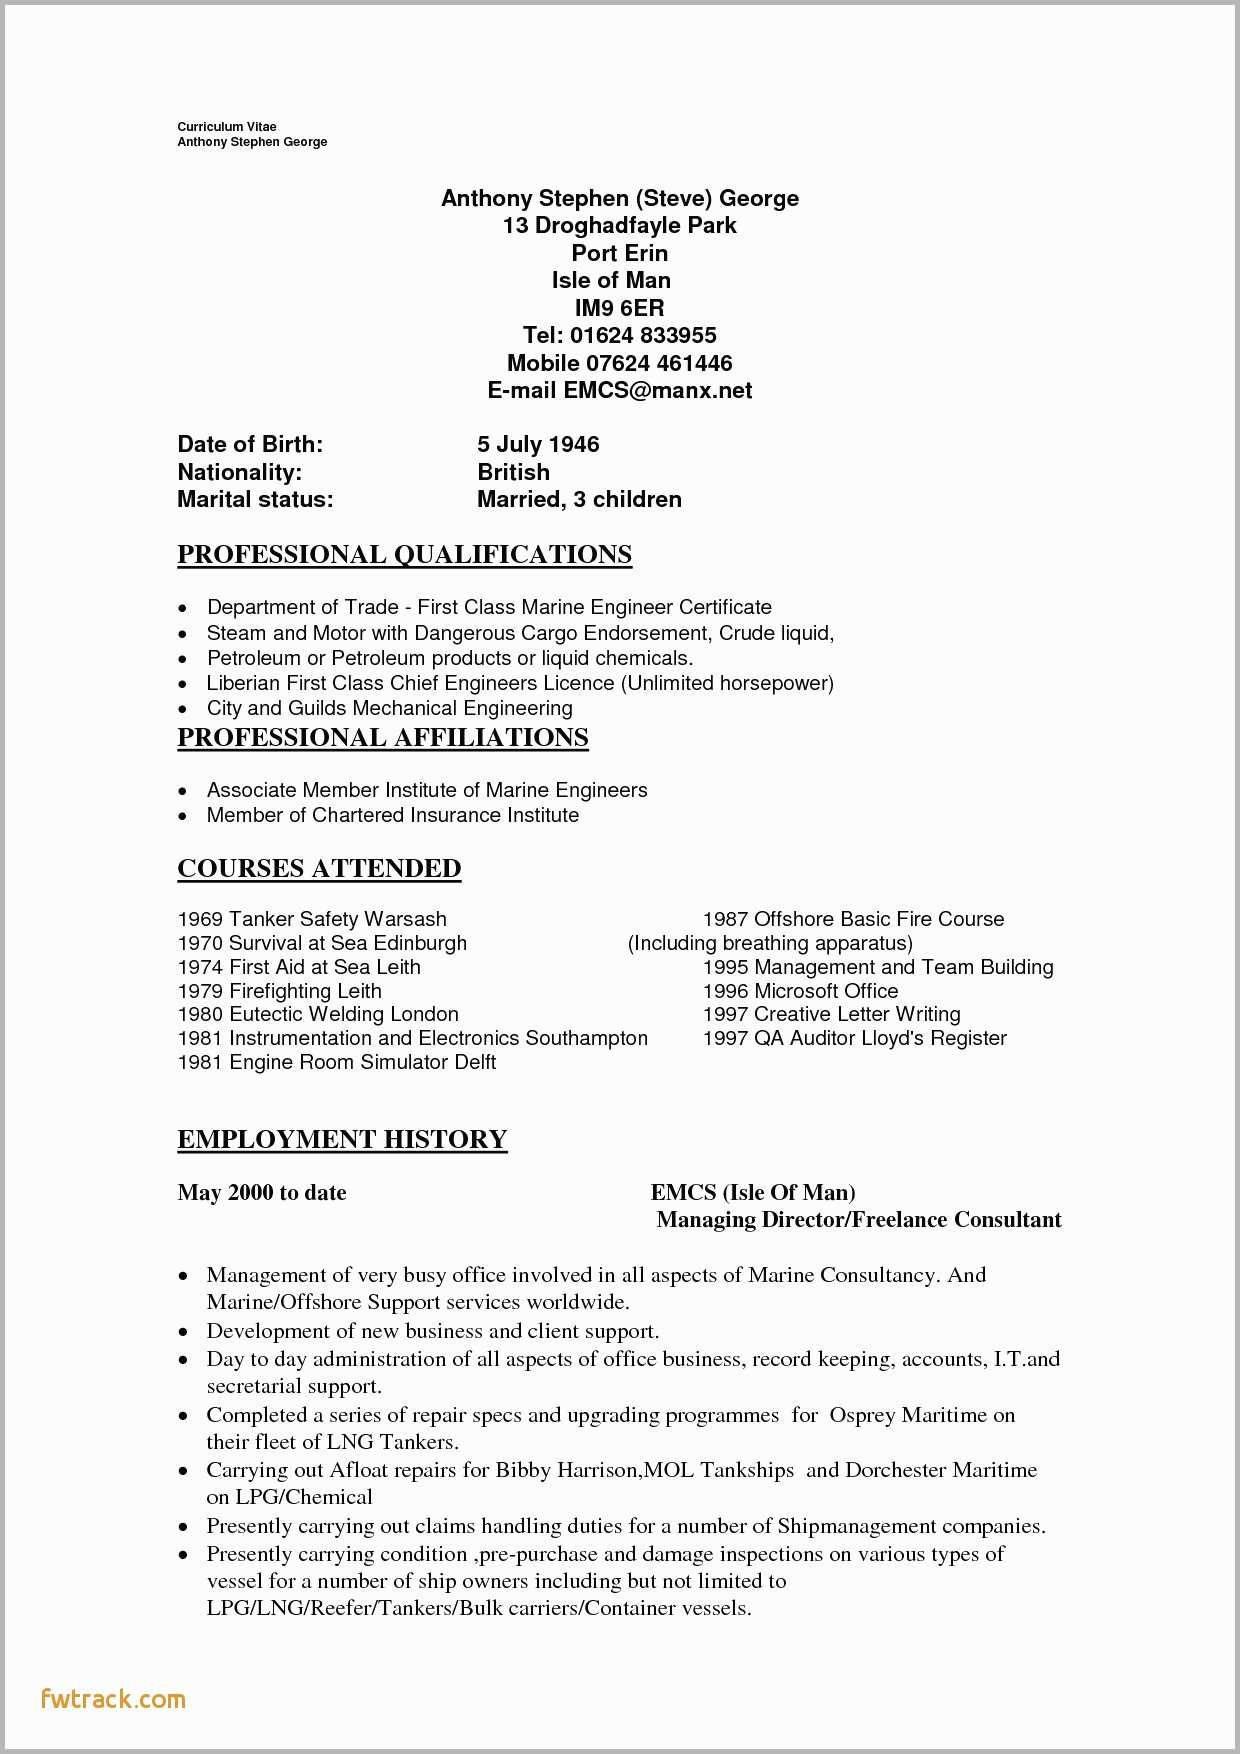 mechanical engineer resume template example-Mechanical Engineer Resume Template 7-p